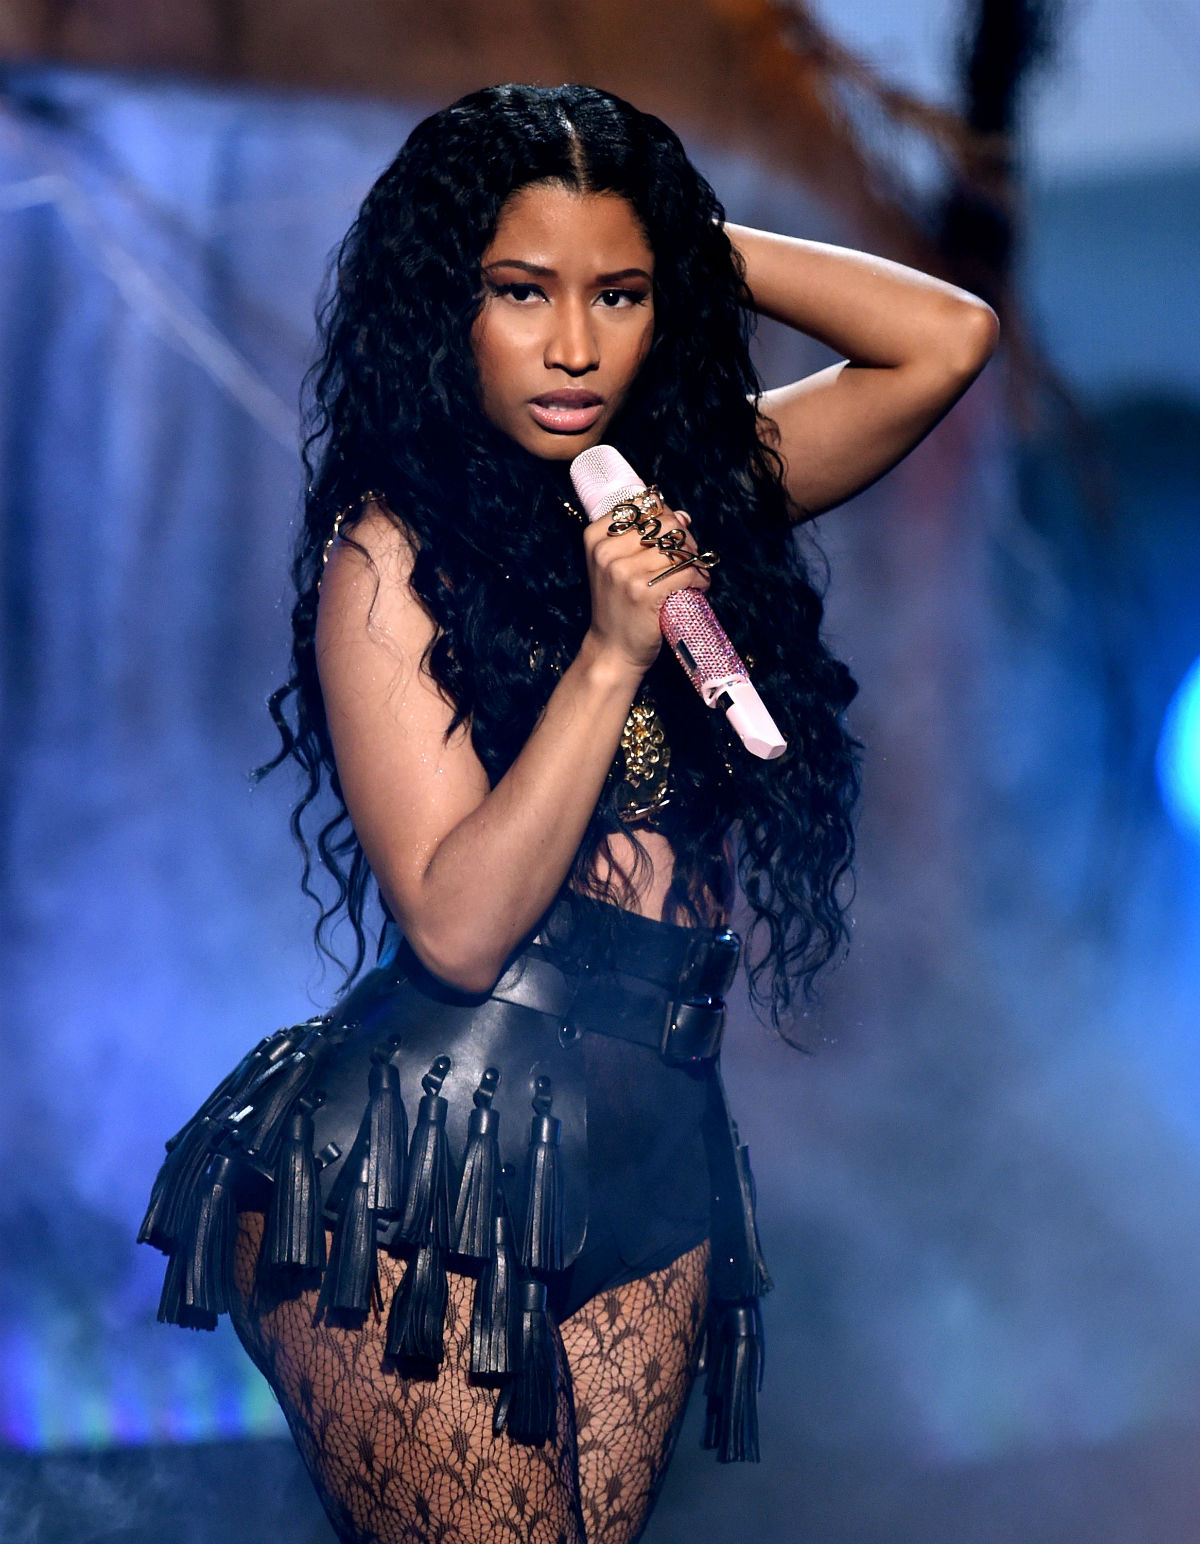 Imagenes de nicki minaj sexual orientation